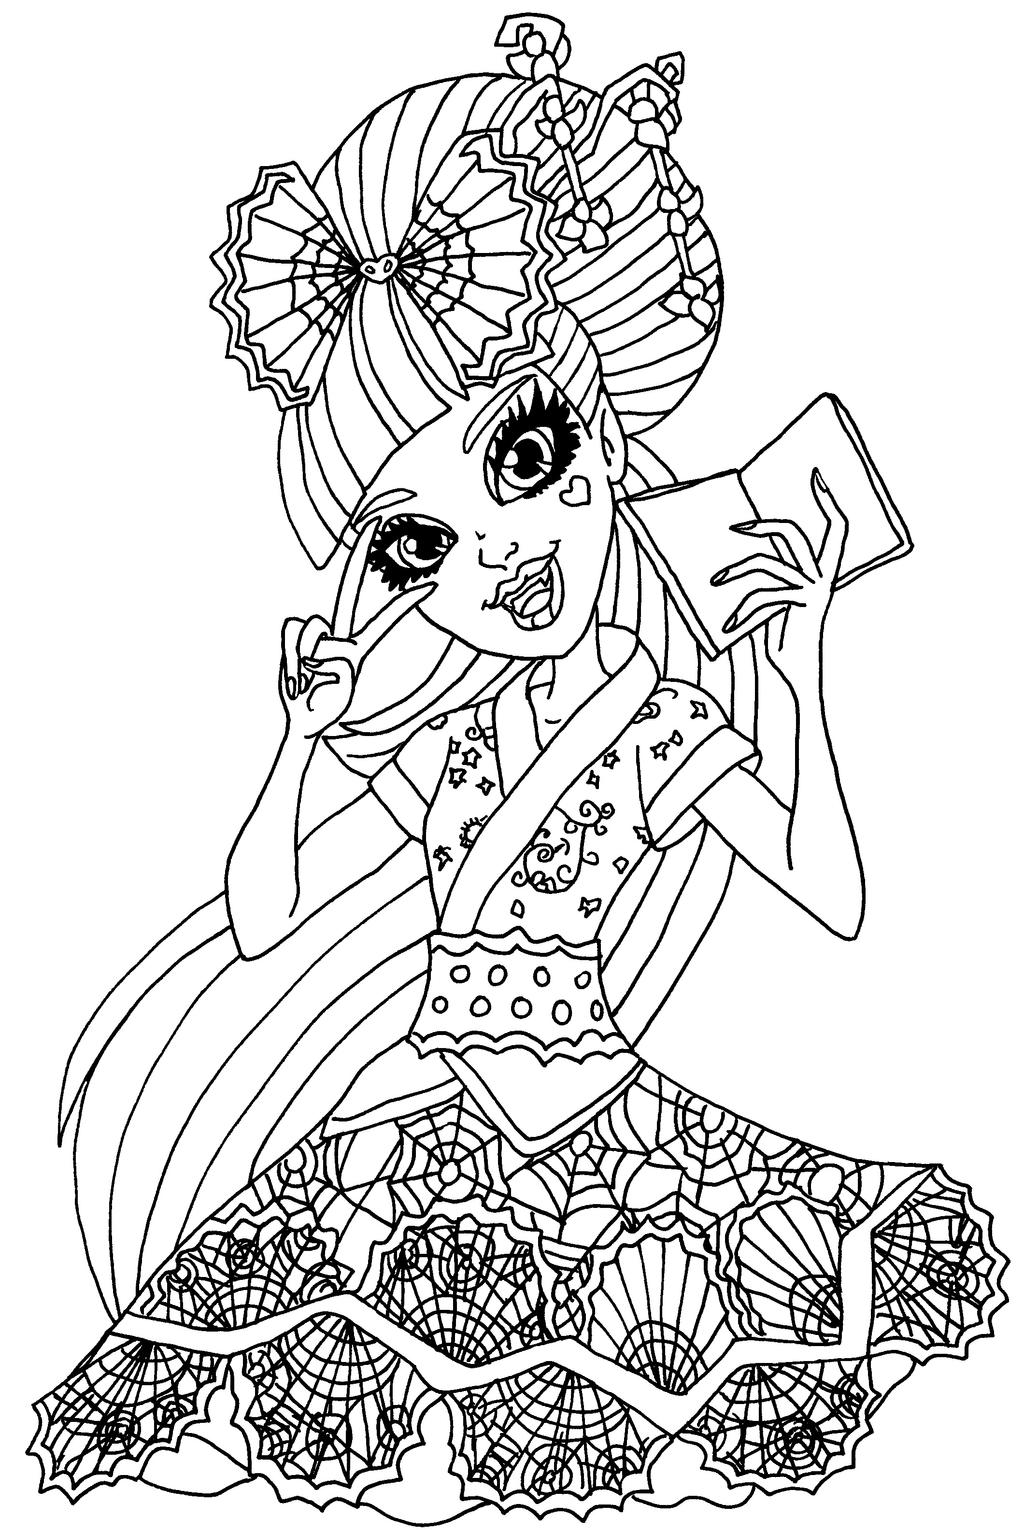 Draculaura exchange student by elfkena on deviantart for Draculaura monster high coloring pages